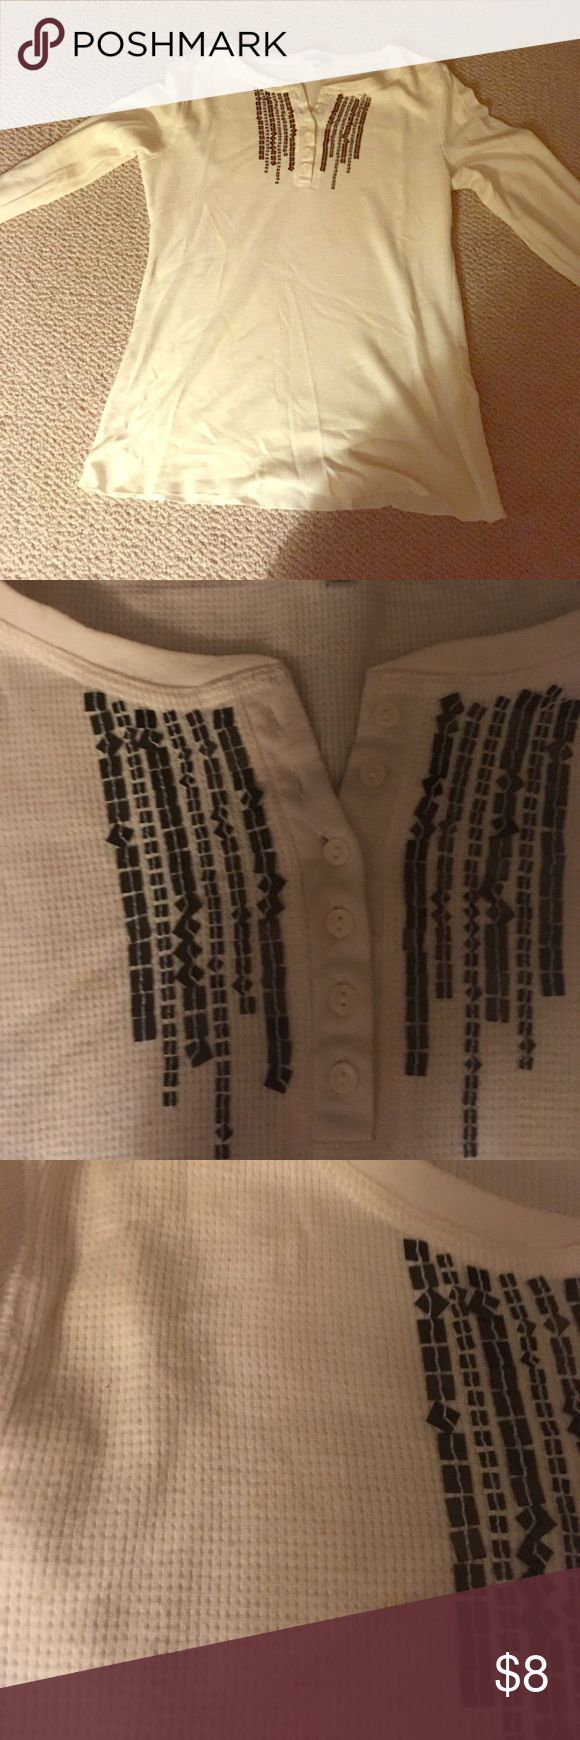 """Charlotte Russe thermal Henley with sequins White colored thermal Henley with gold sequins next to buttons. 6 buttons give you options to button it up or down. Bust measures 34"""". Gold sequins dress up the shirt so you can wear it for a night on the town! Charlotte Russe Tops Tees - Long Sleeve"""